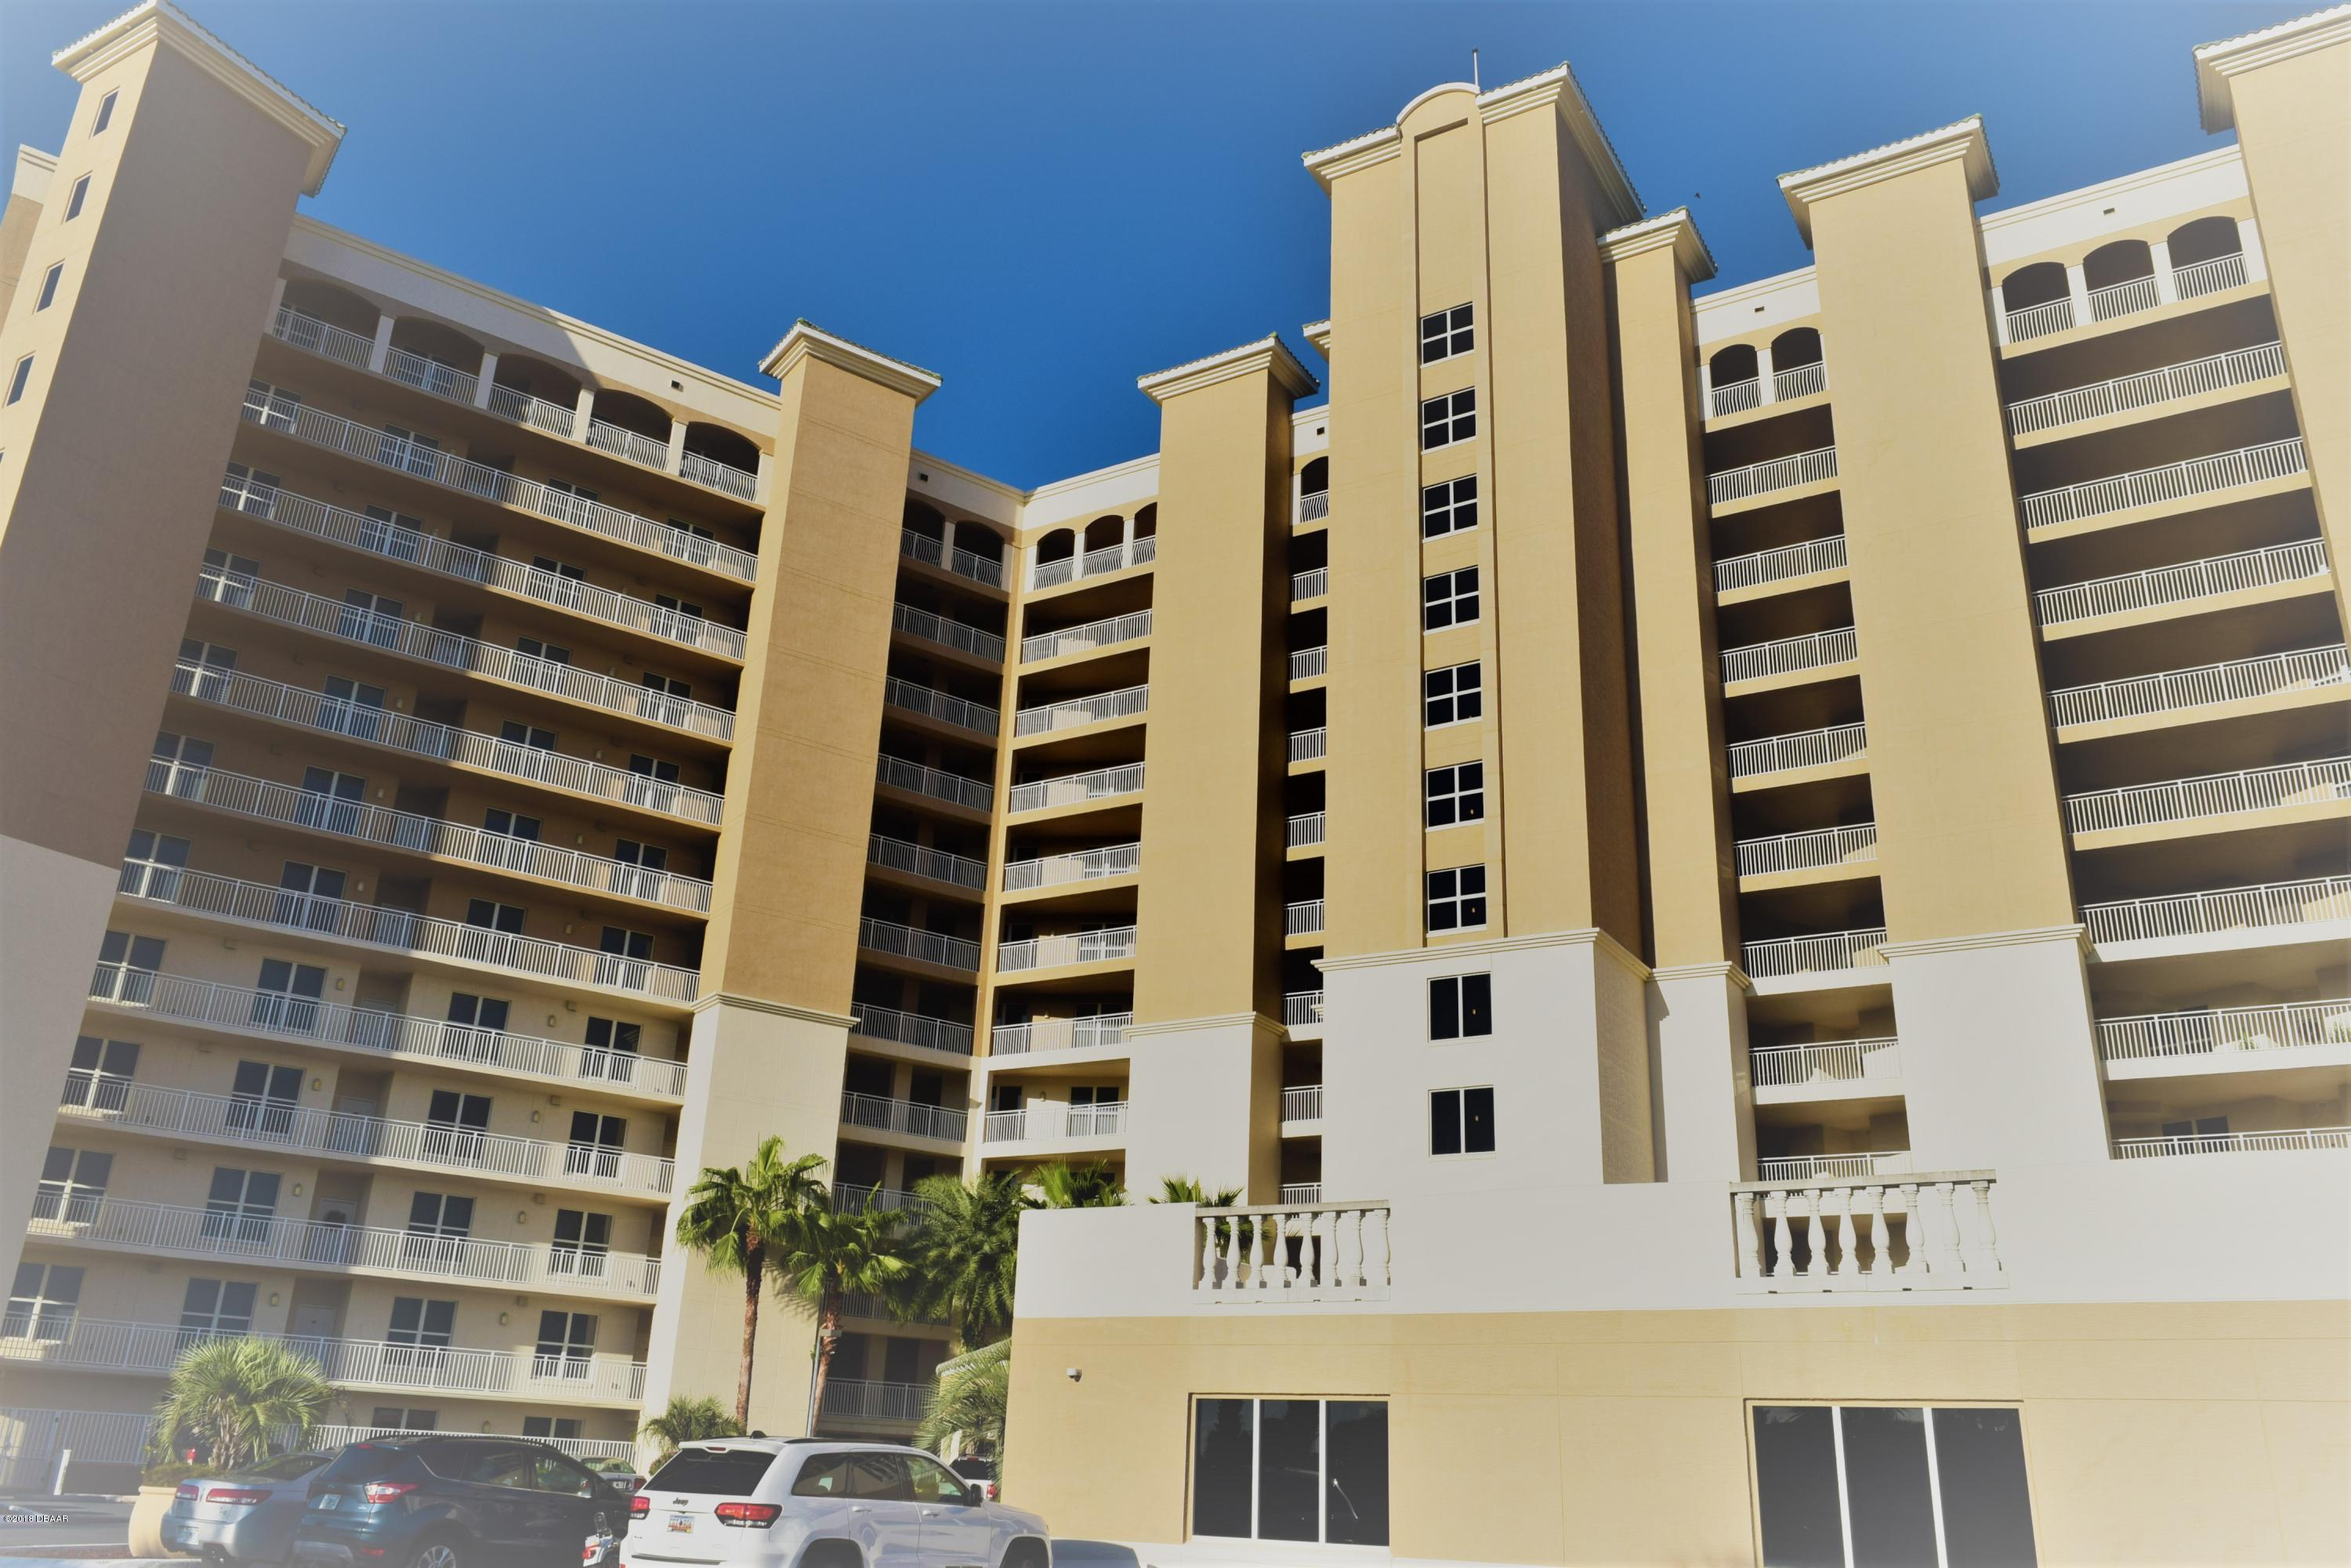 2403 Atlantic Daytona Beach - 2